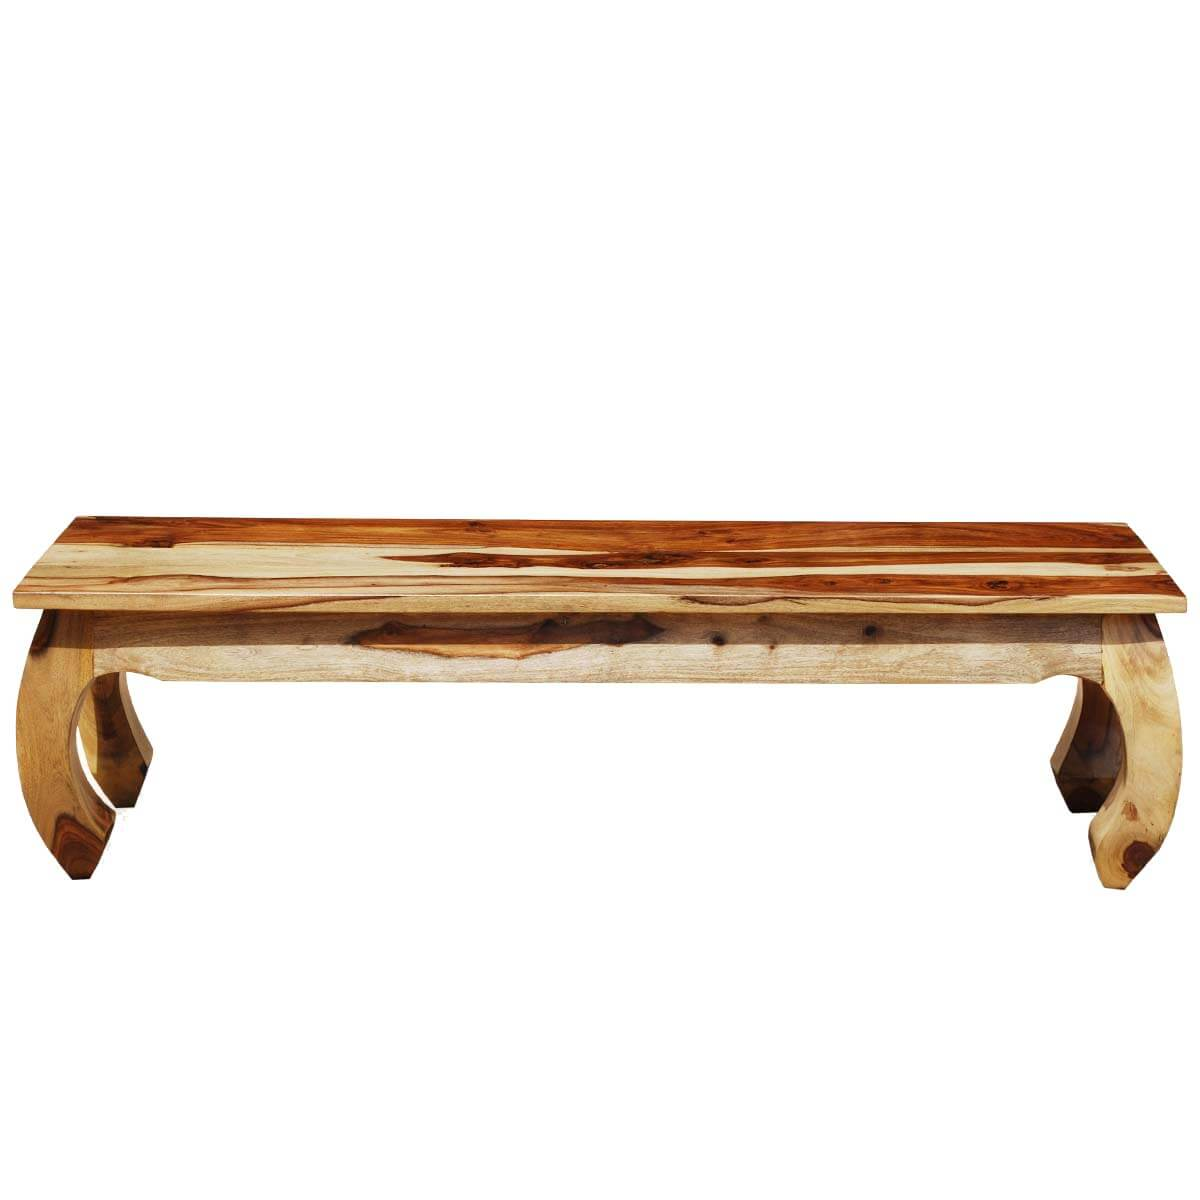 Solid Wood Inward Curved Legs Window Wooden Bench